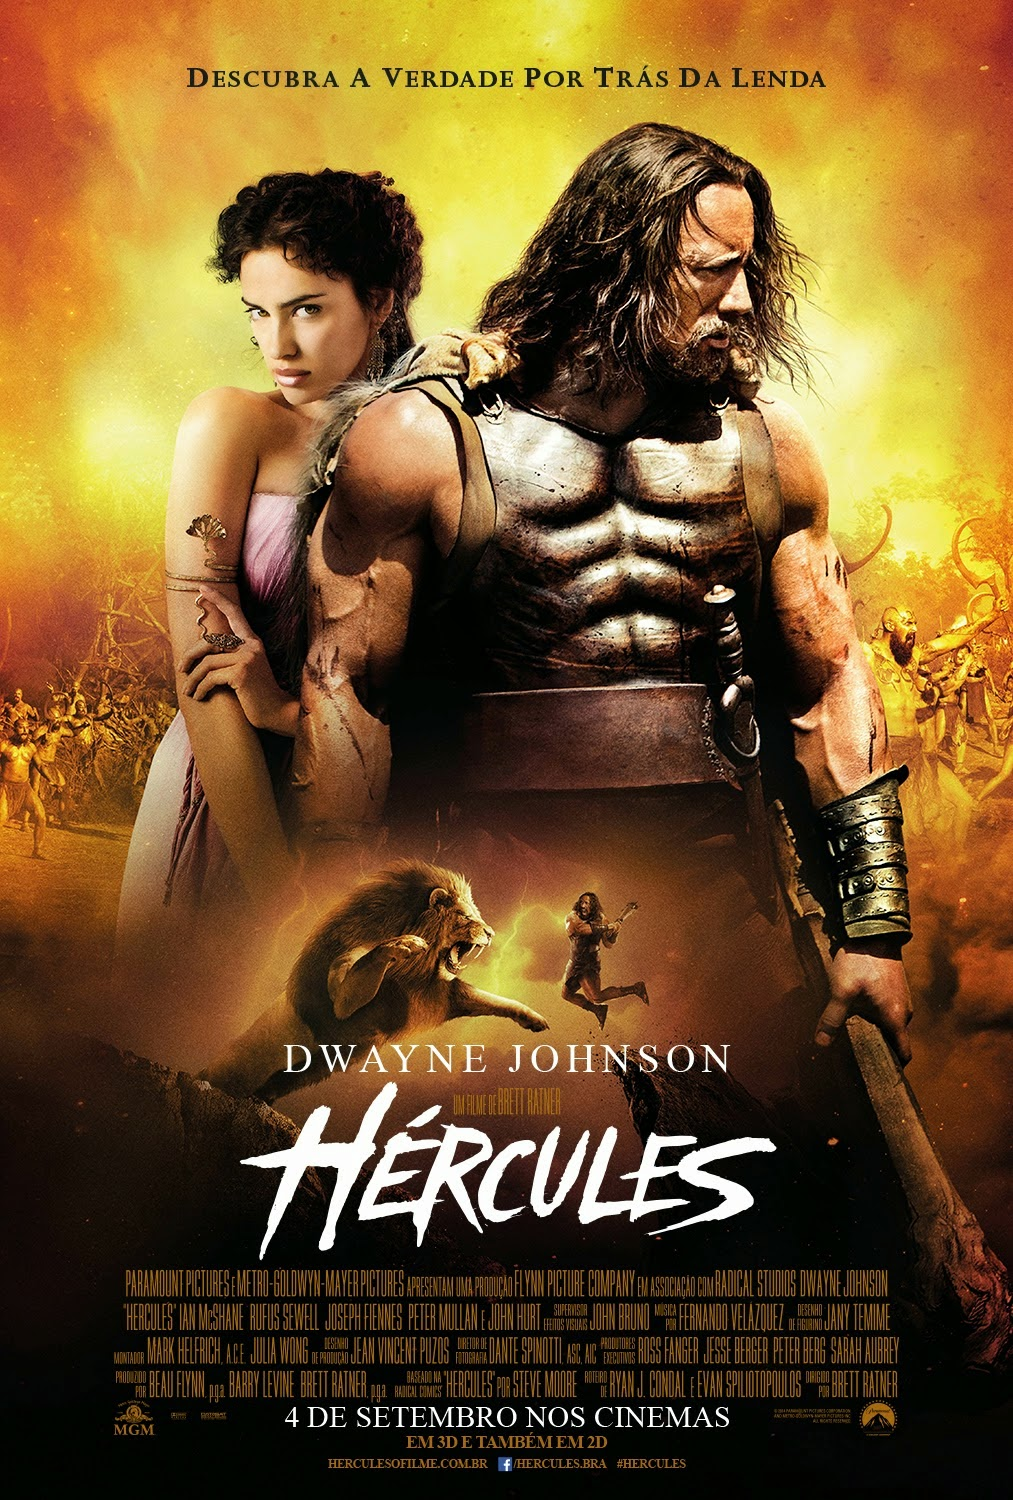 H  233 rcules 2014 Dublado HDDwayne Johnson Hercules Movie Poster